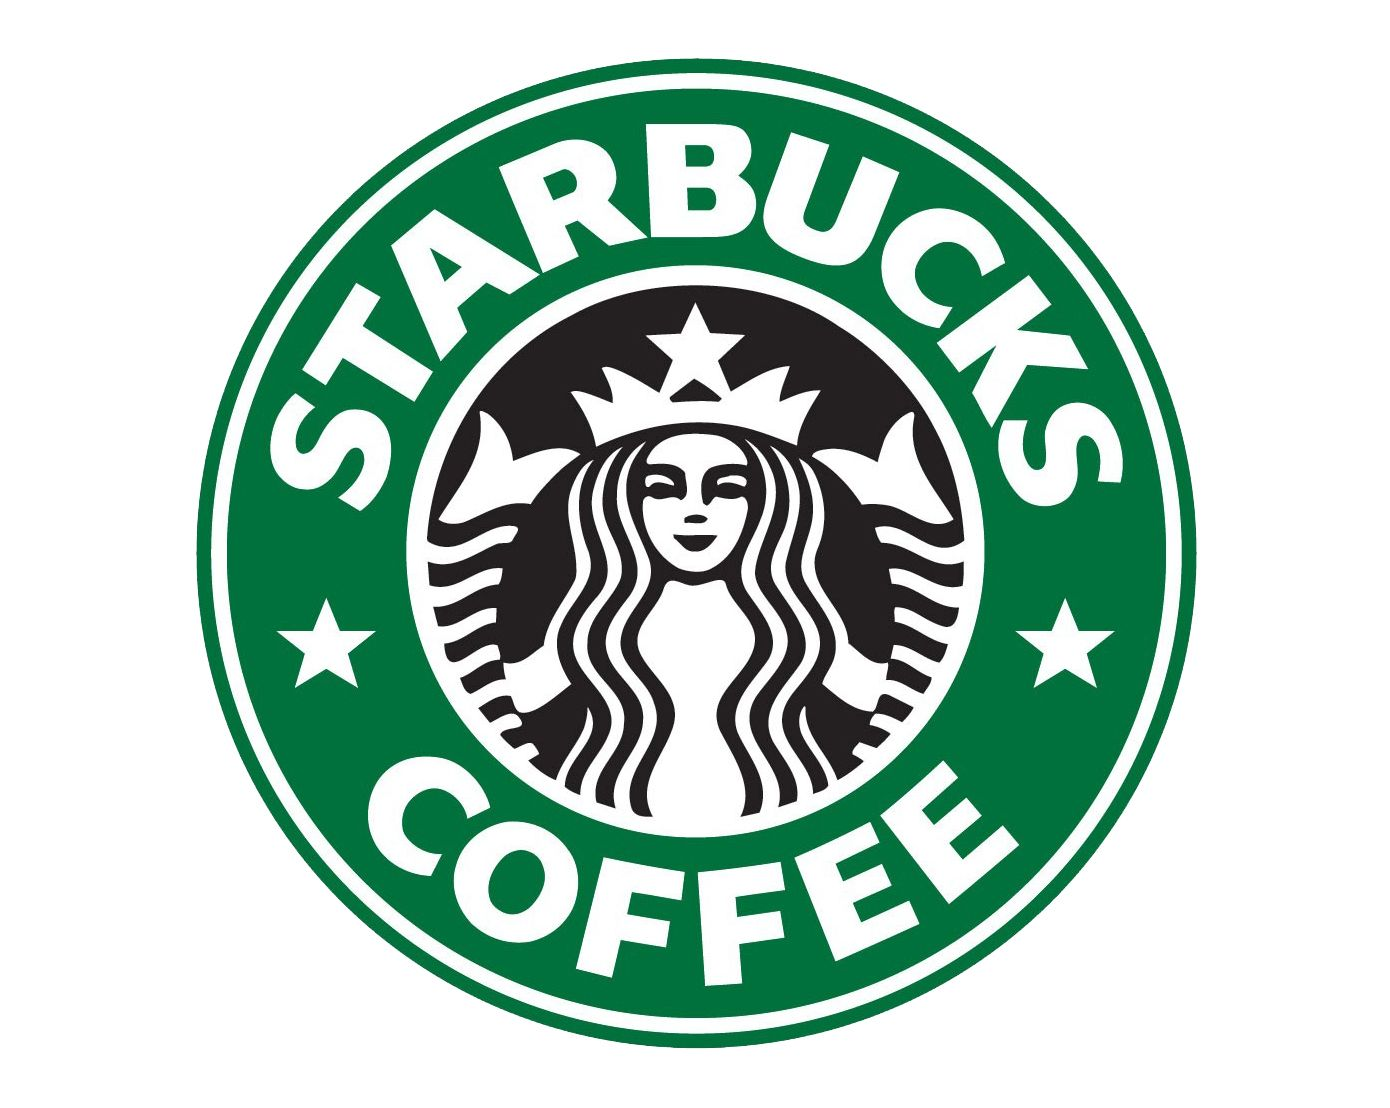 Starbucks logo meaning all logos world pinterest starbucks starbucks logo meaning biocorpaavc Image collections